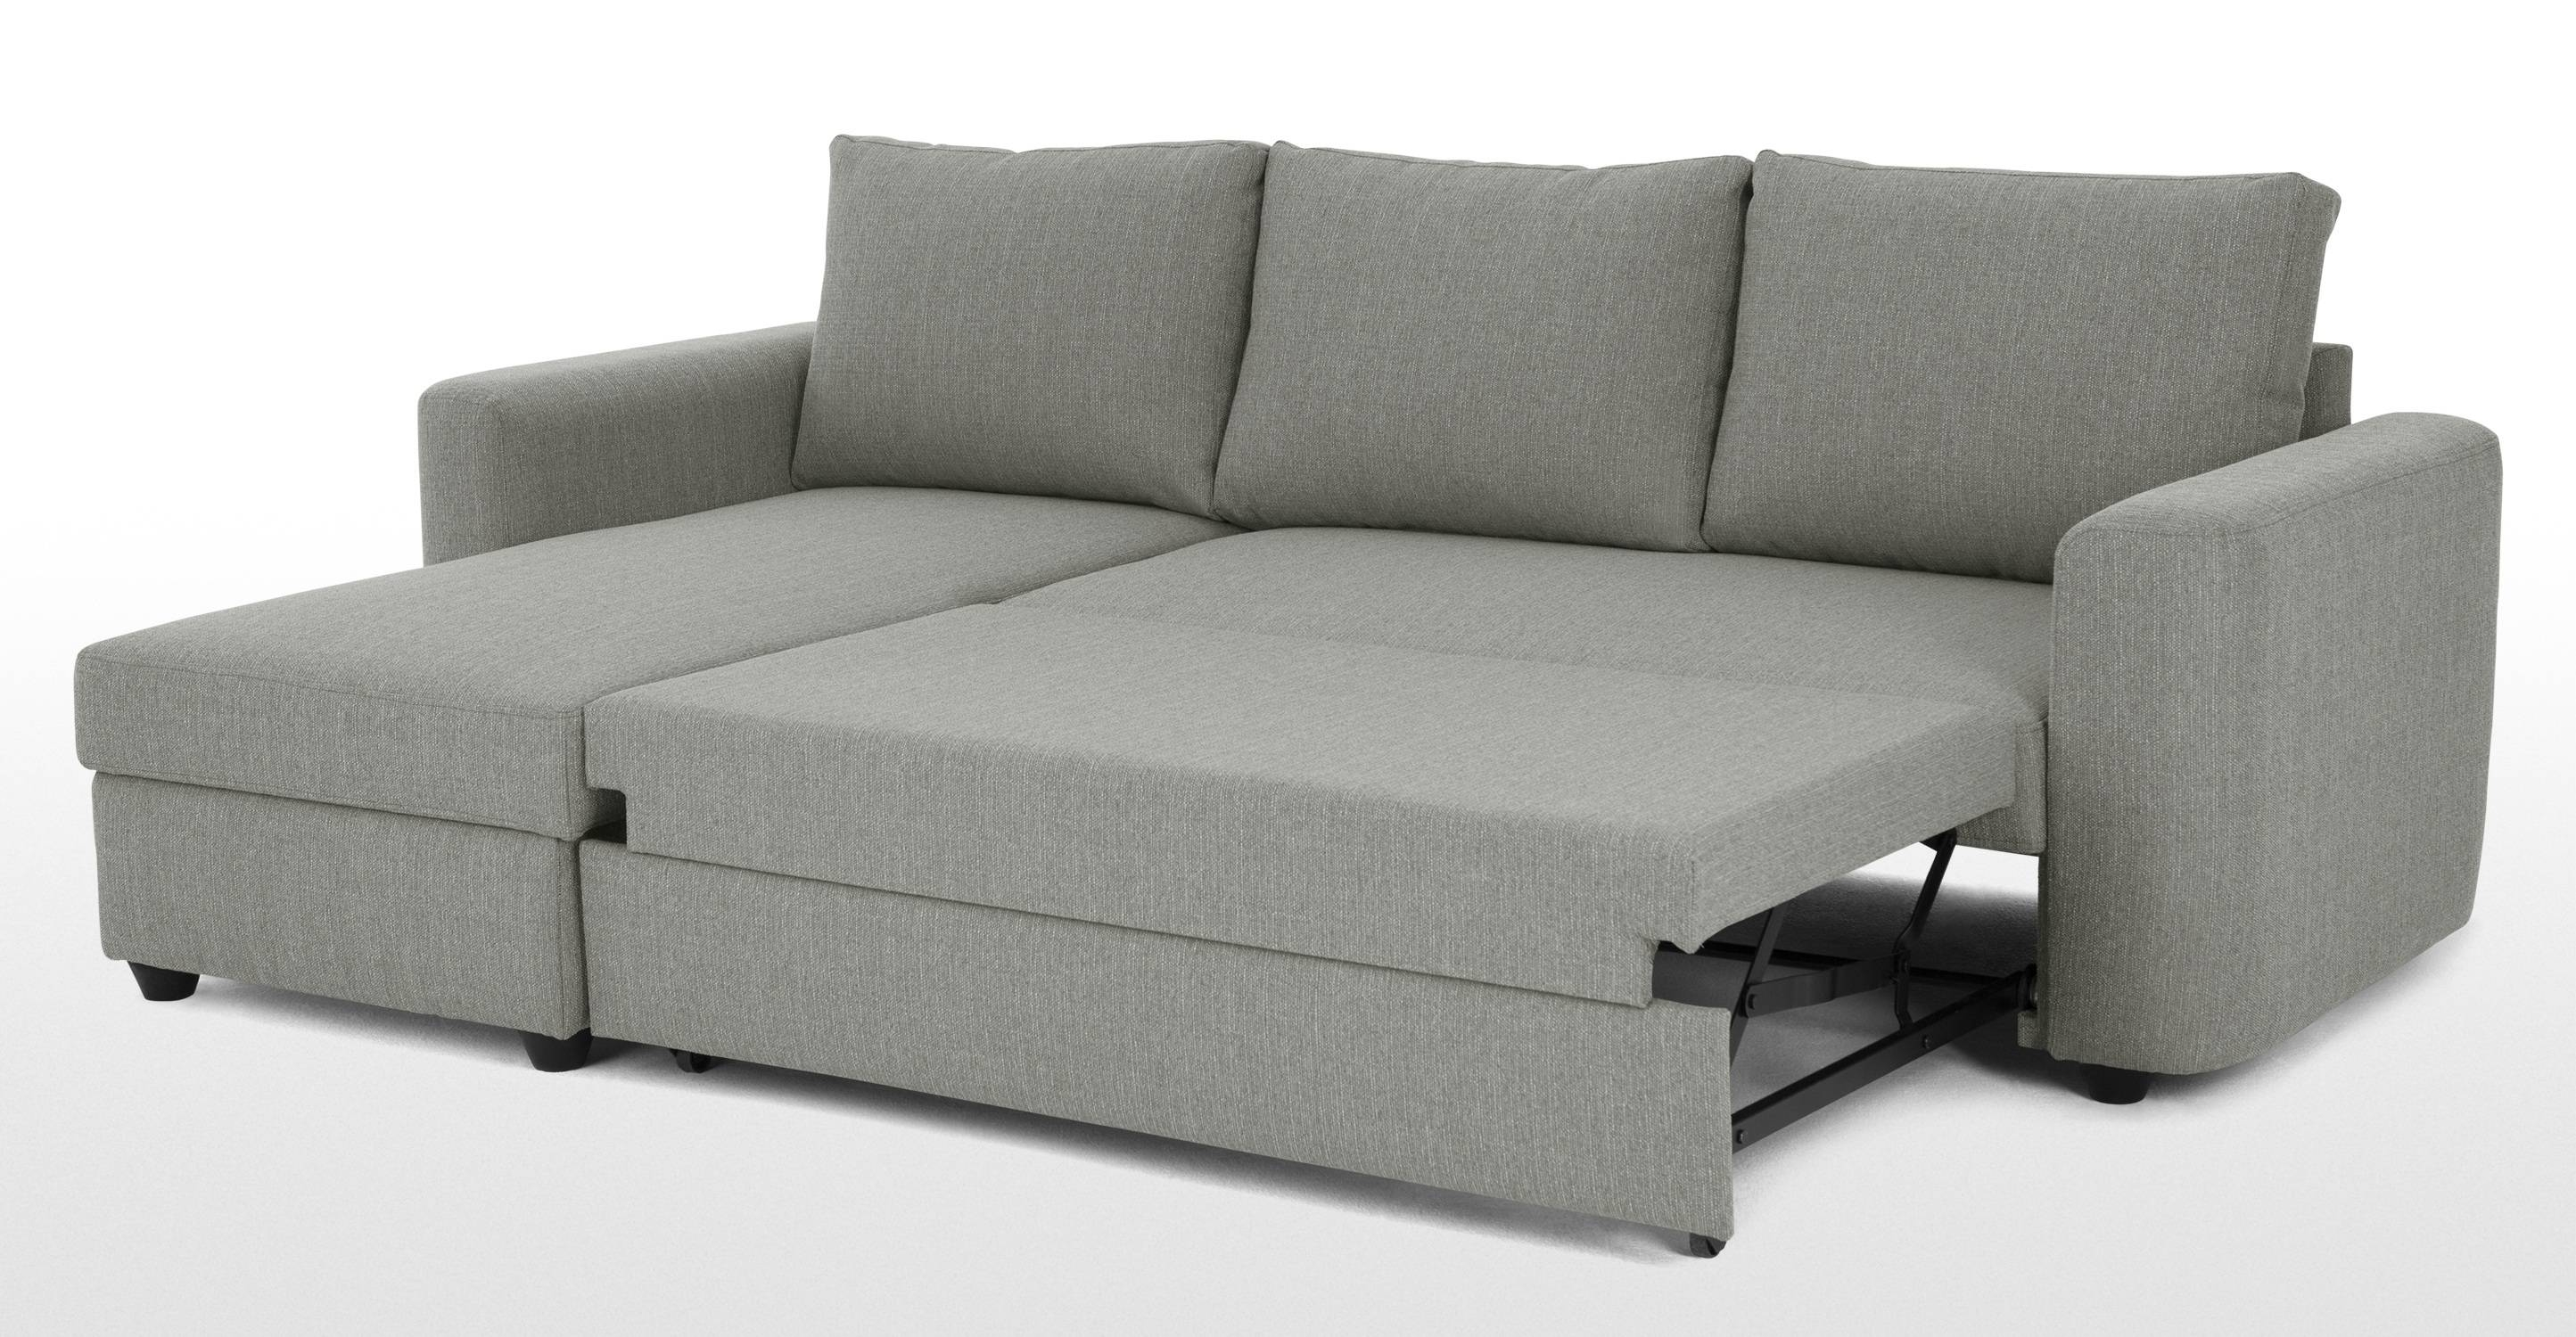 Aidian Corner Storage Sofa Bed, Silver Grey | Made With Sofa Beds With Storage Chaise (View 1 of 15)